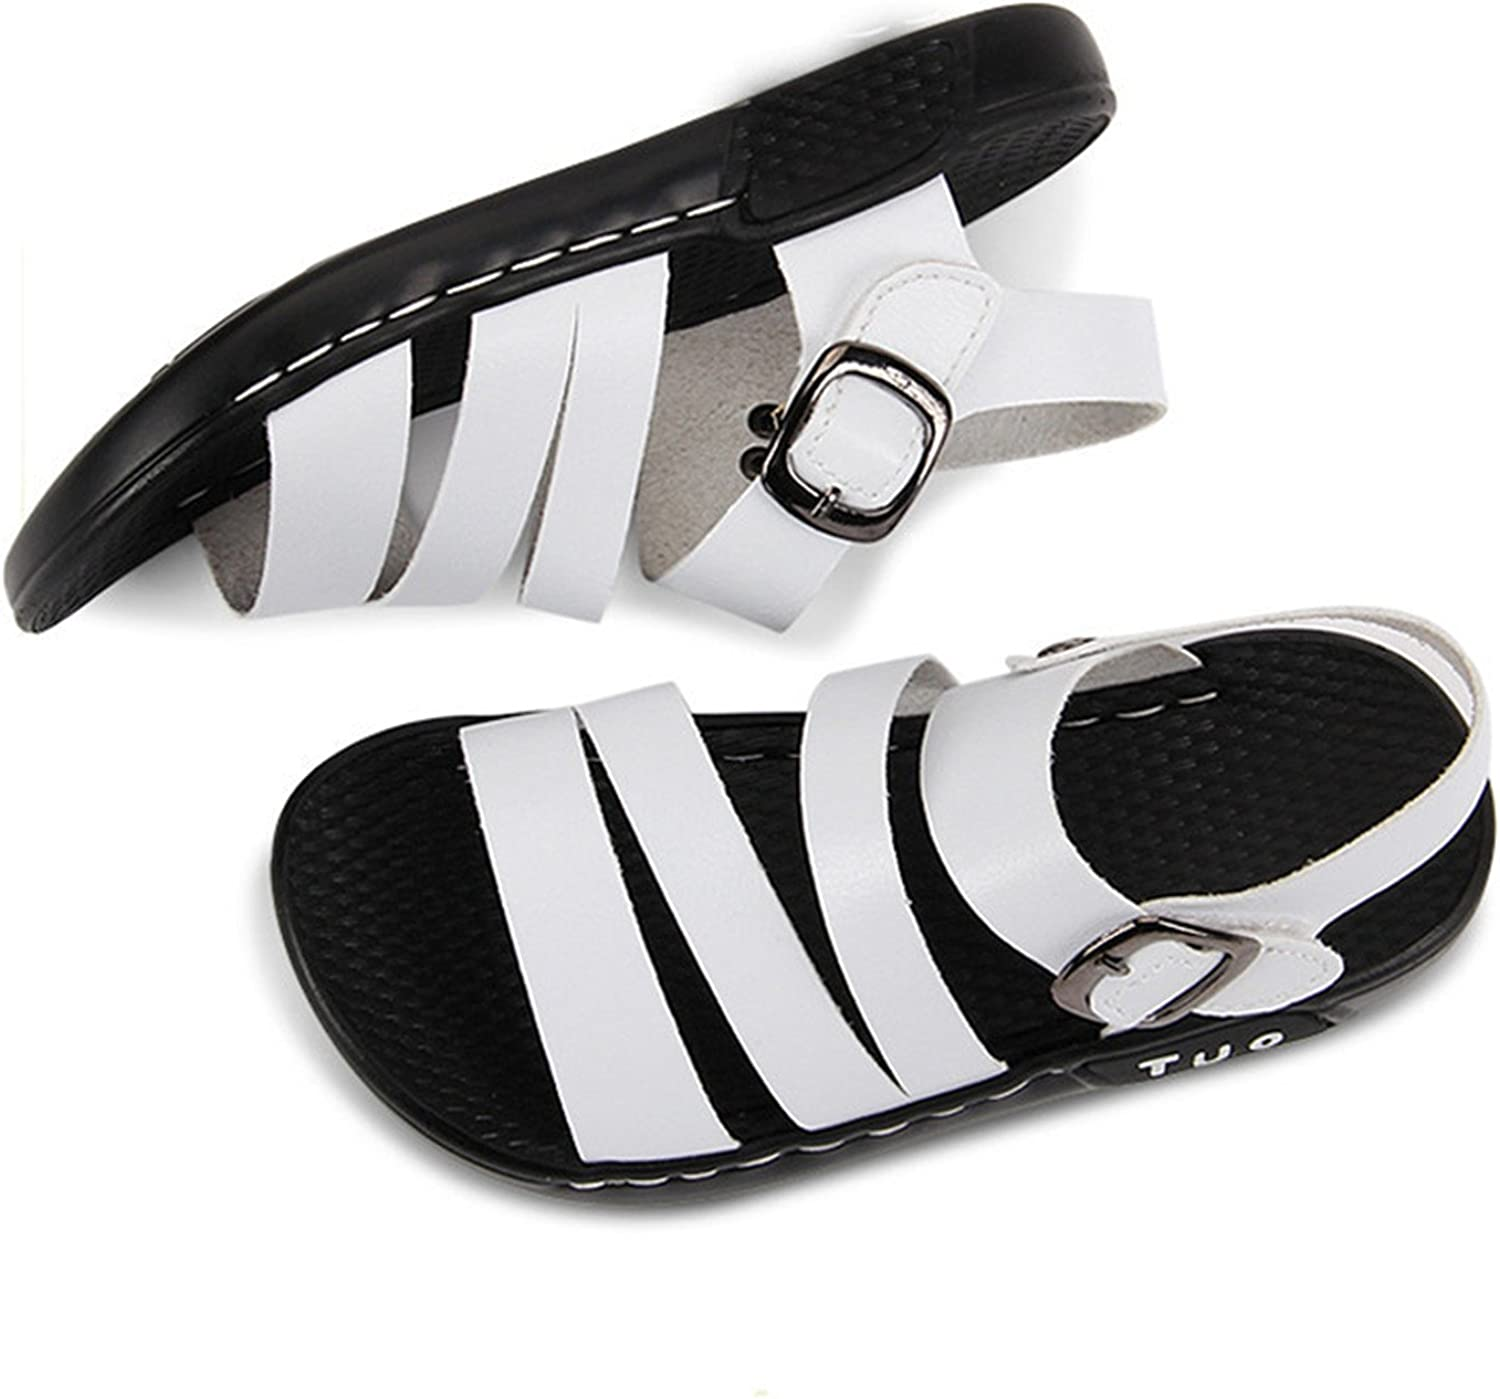 Aworth Boys Soft Leather Sandals Baby Girls Summer Prewalker Soft Sole Shoes Beach Sandals White Bebe Shoes Moccasins